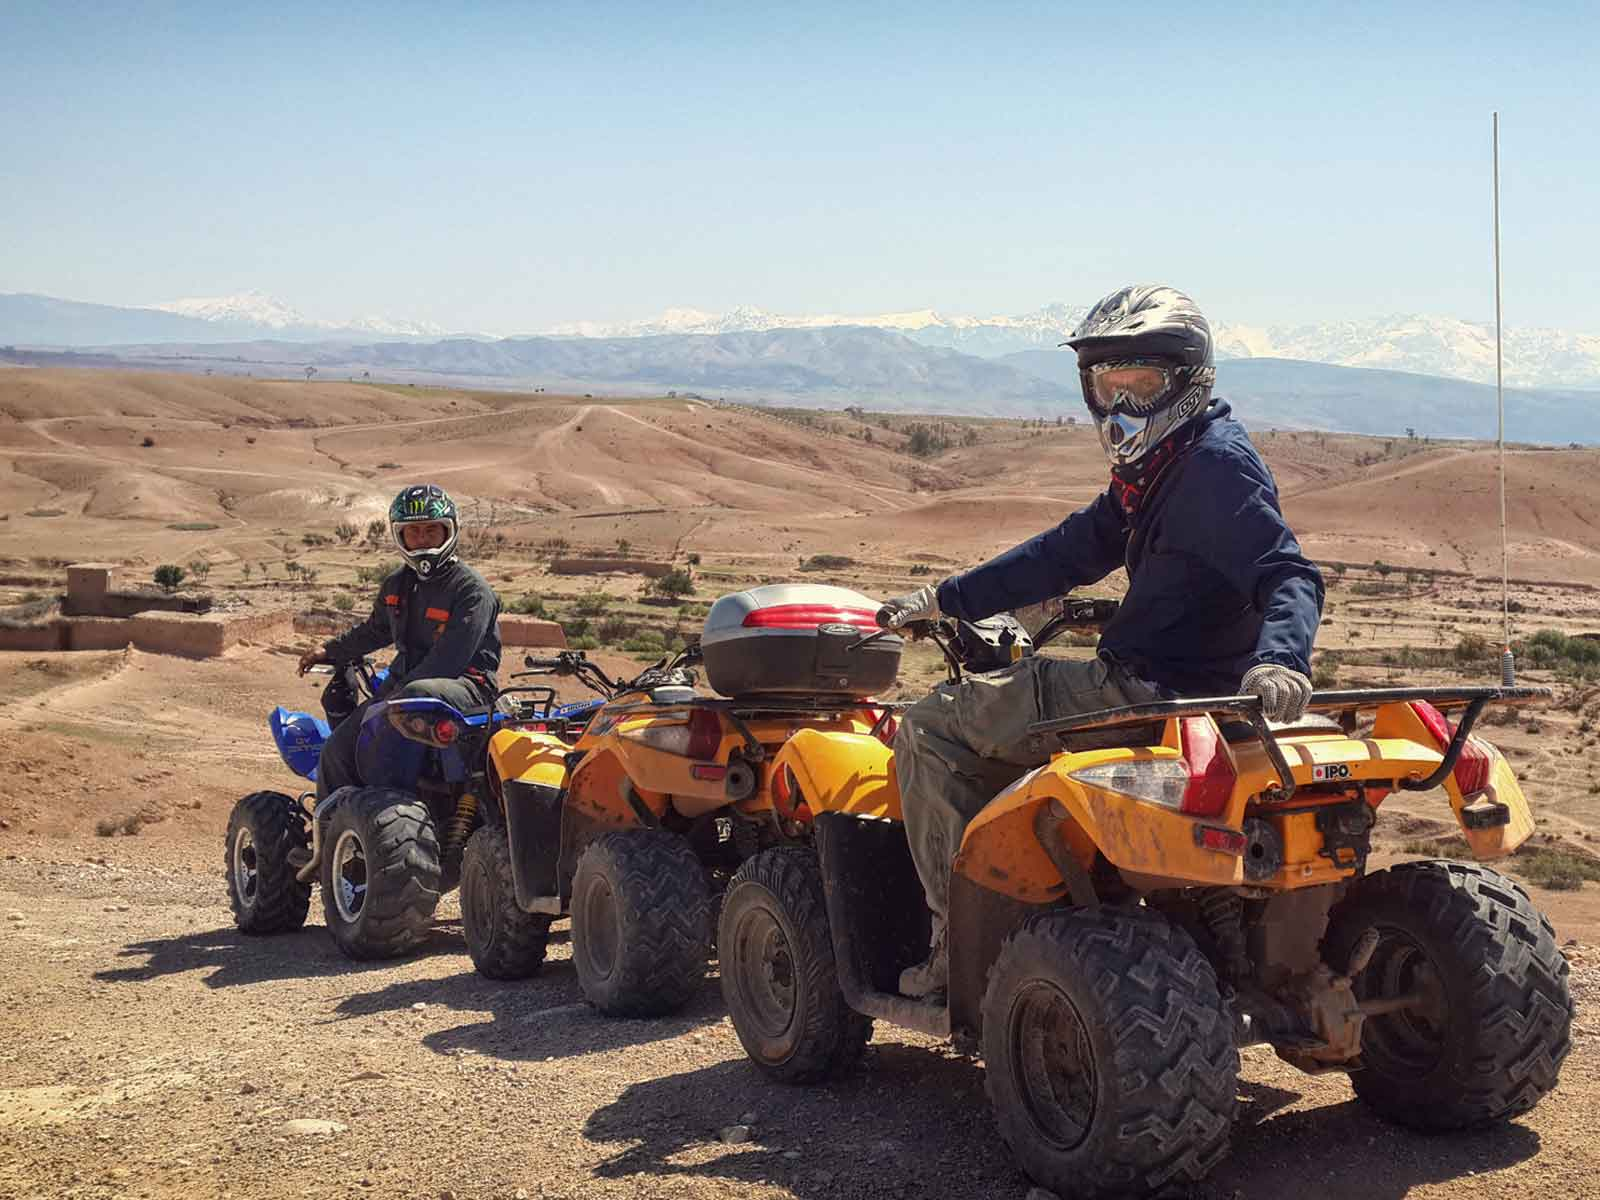 Palmeraie quad biking Marrakech